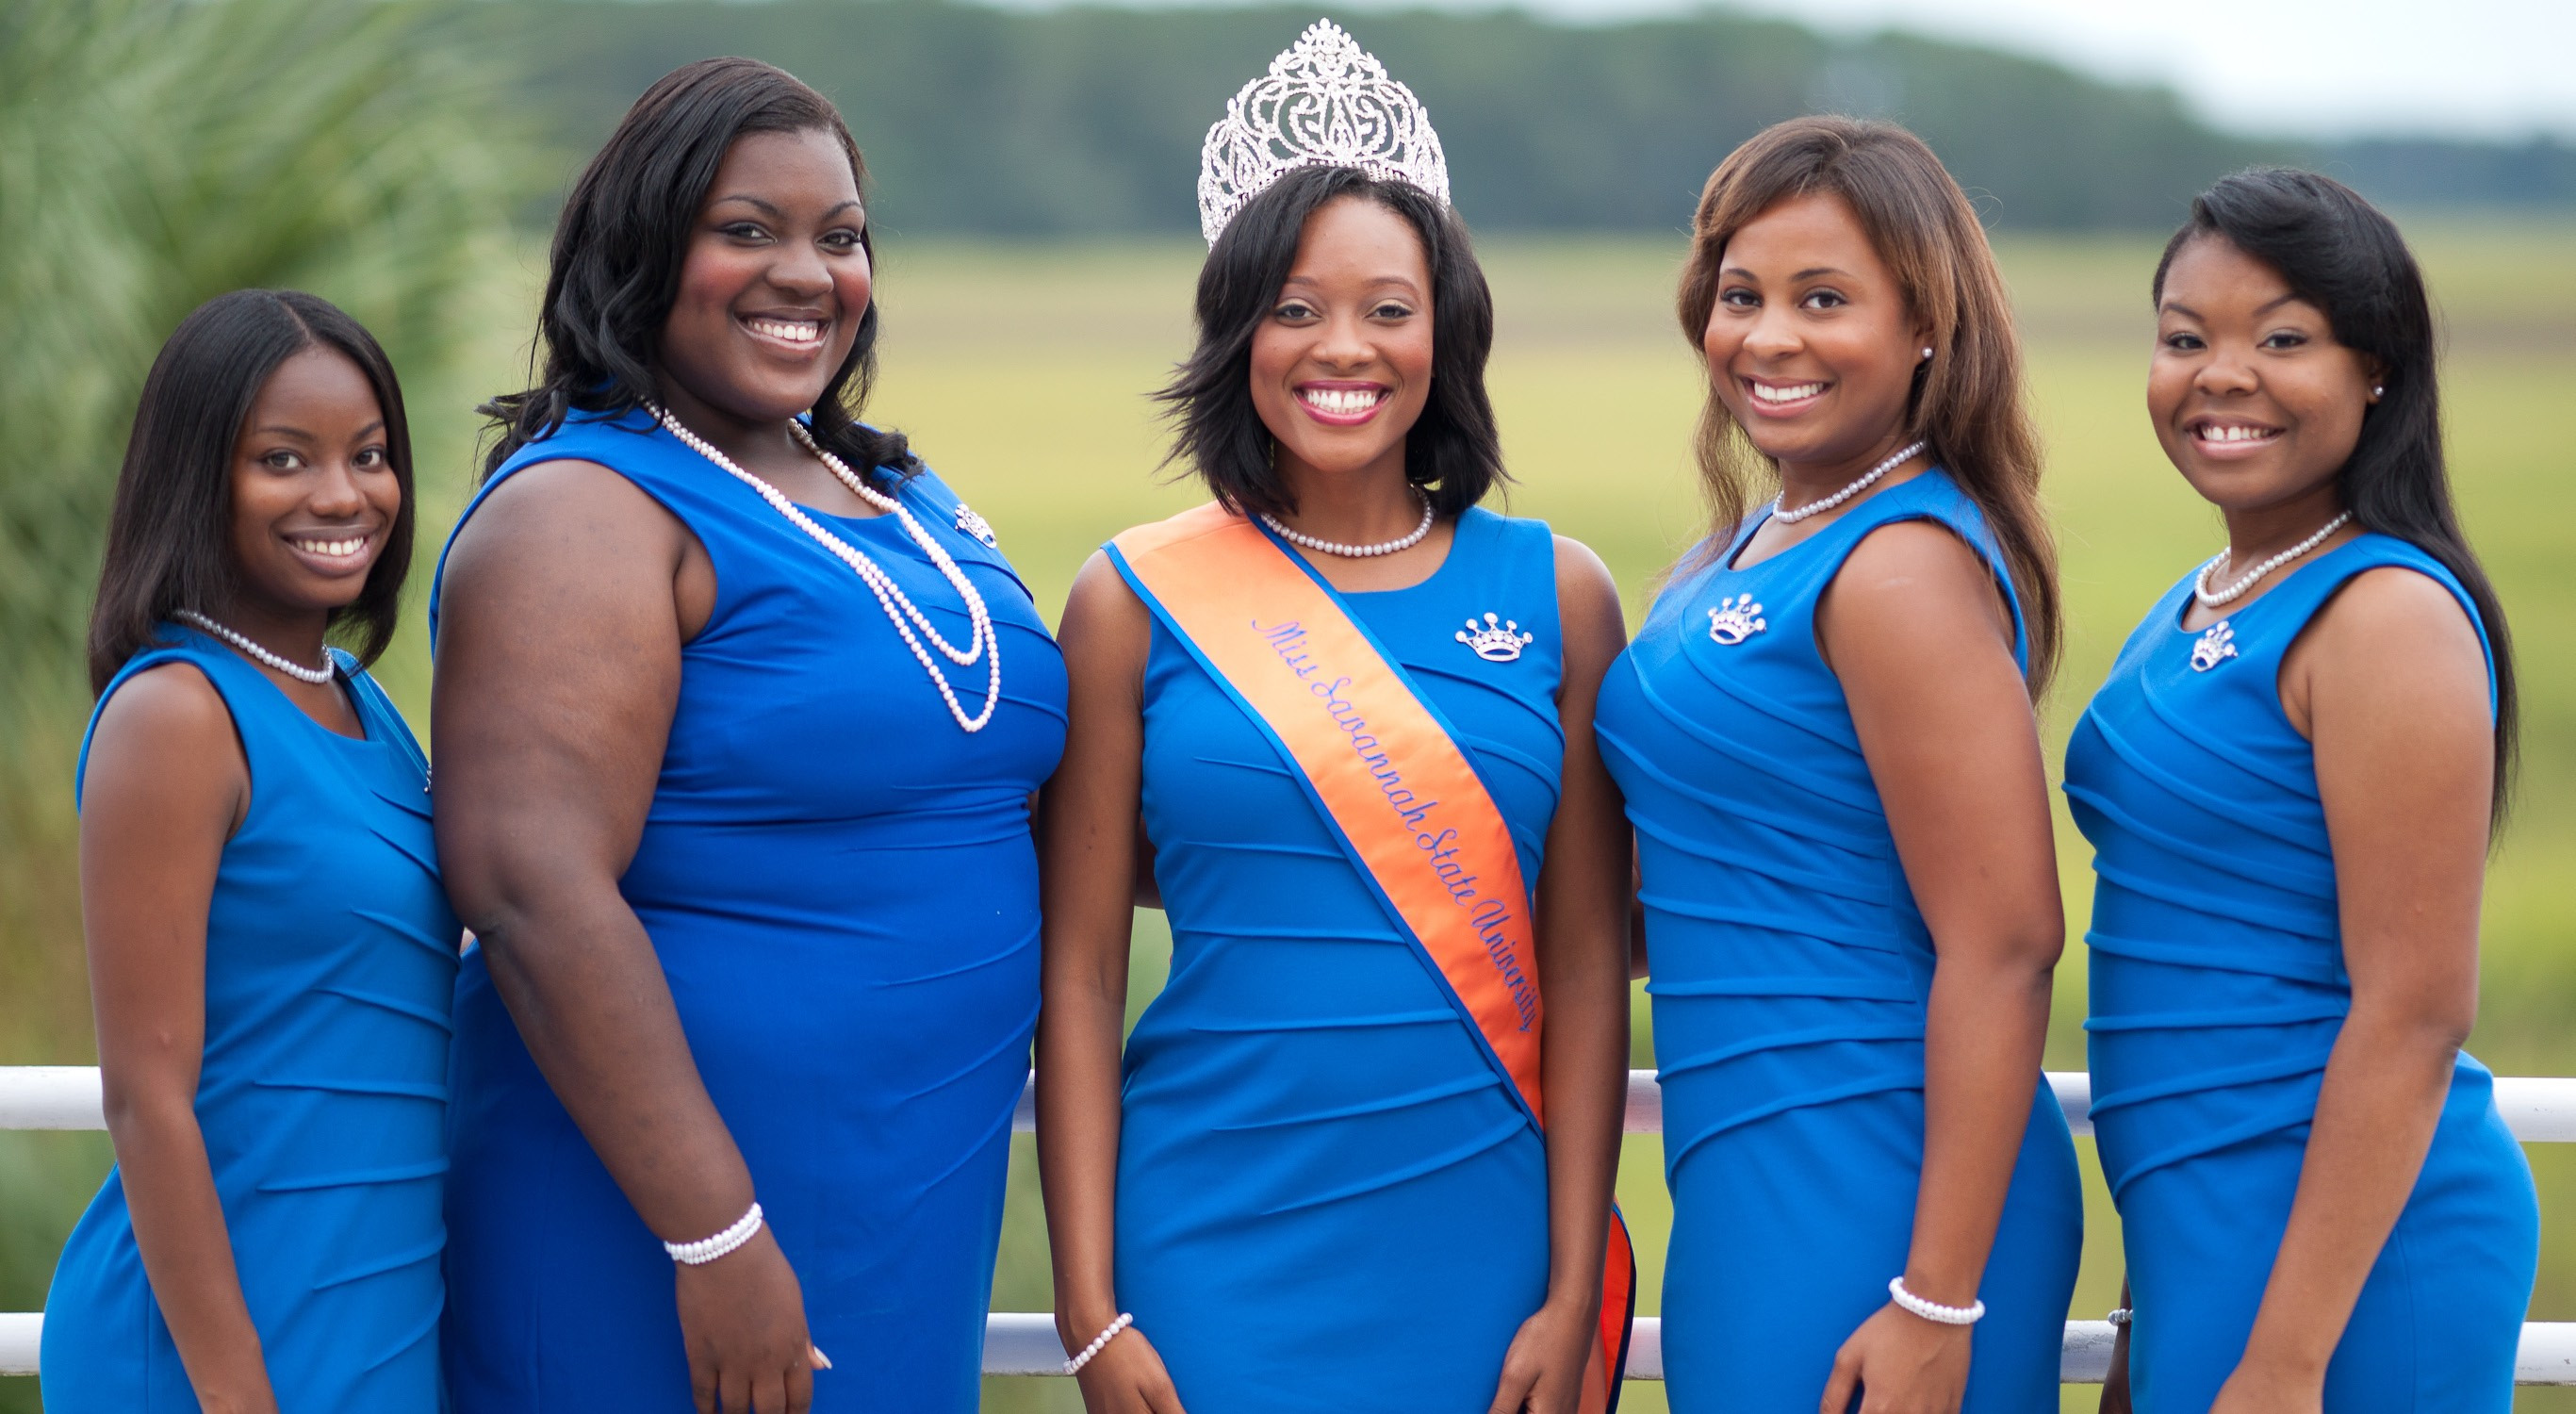 Tiffany Hallback, a rising senior business management major from Austell, Ga., will be crowned